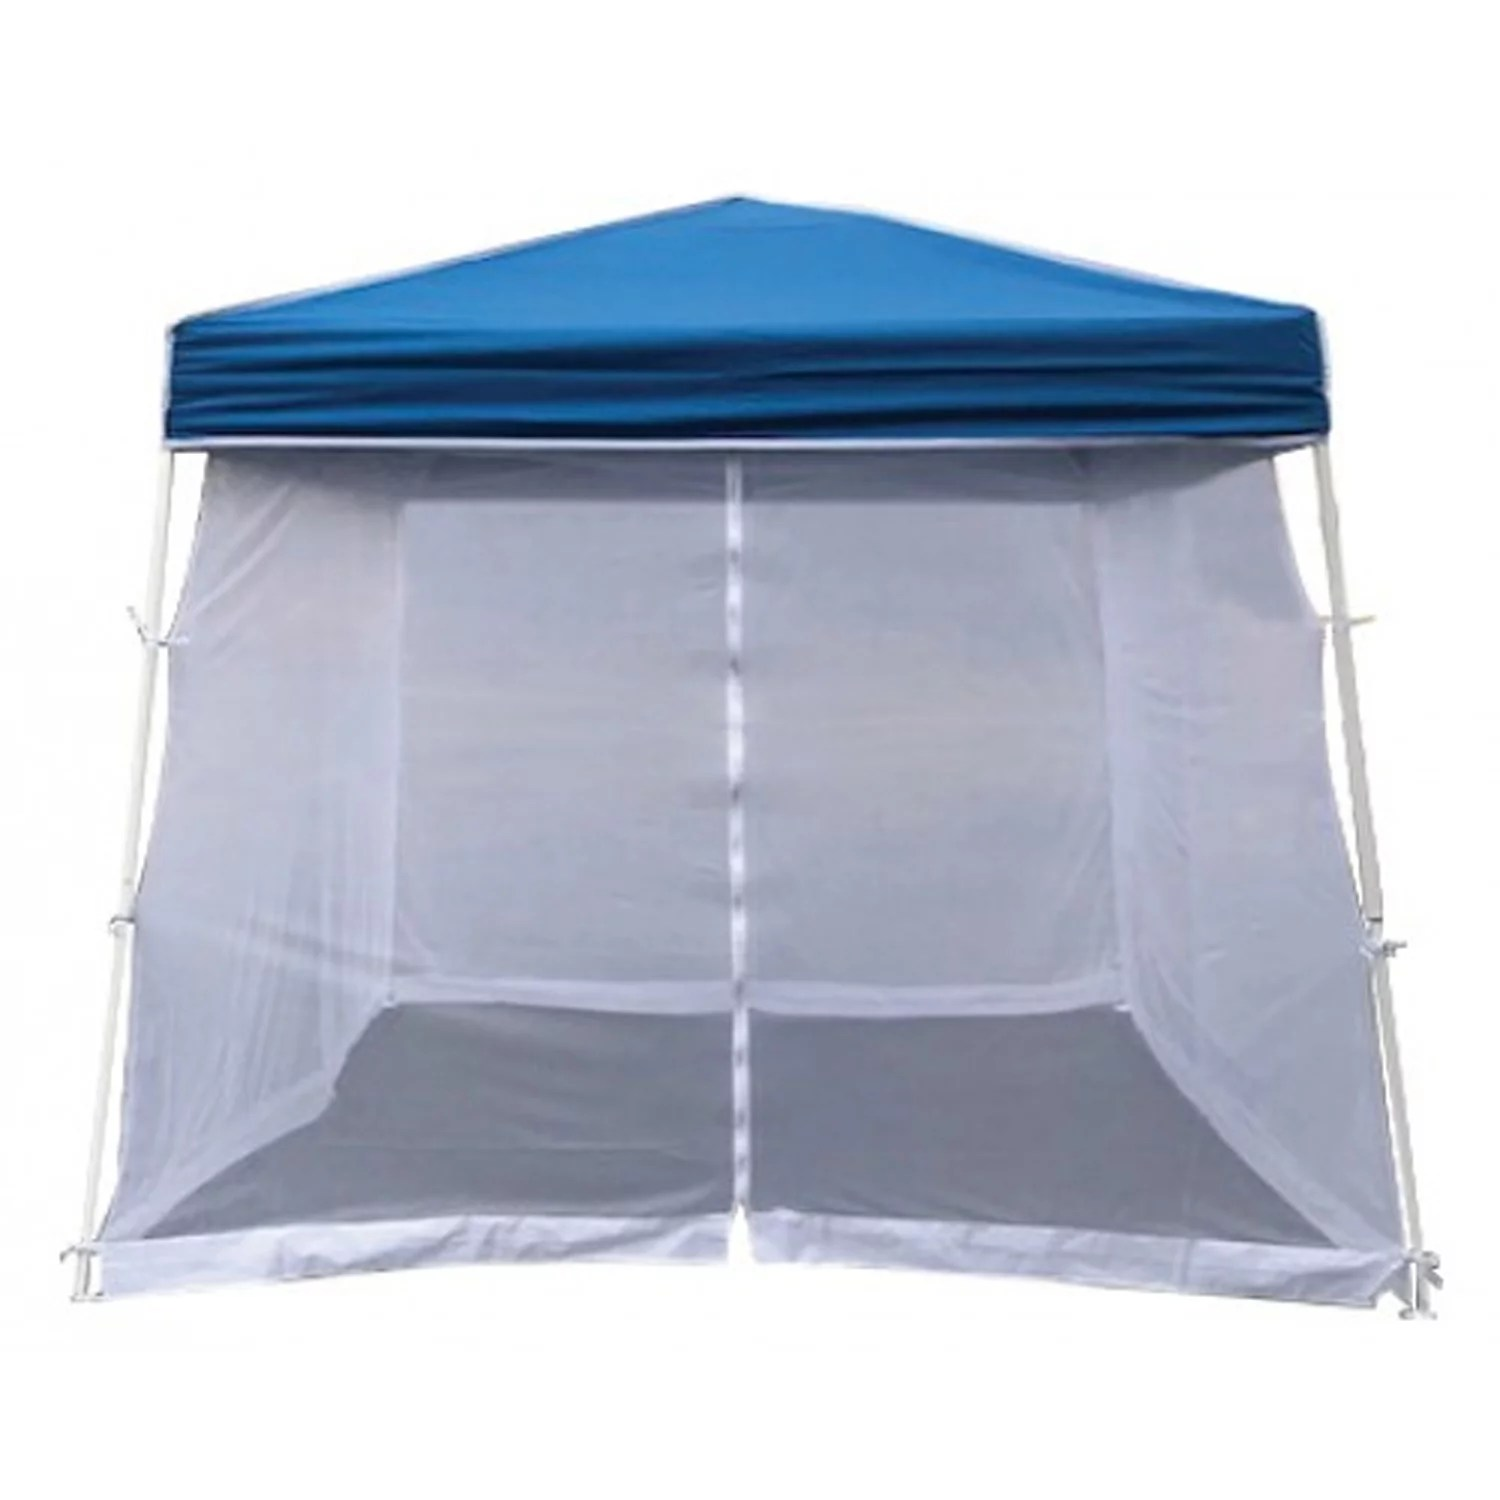 z shade horizon 10 foot angled leg screen room patio shelter attachment blue canopy not included walmart com